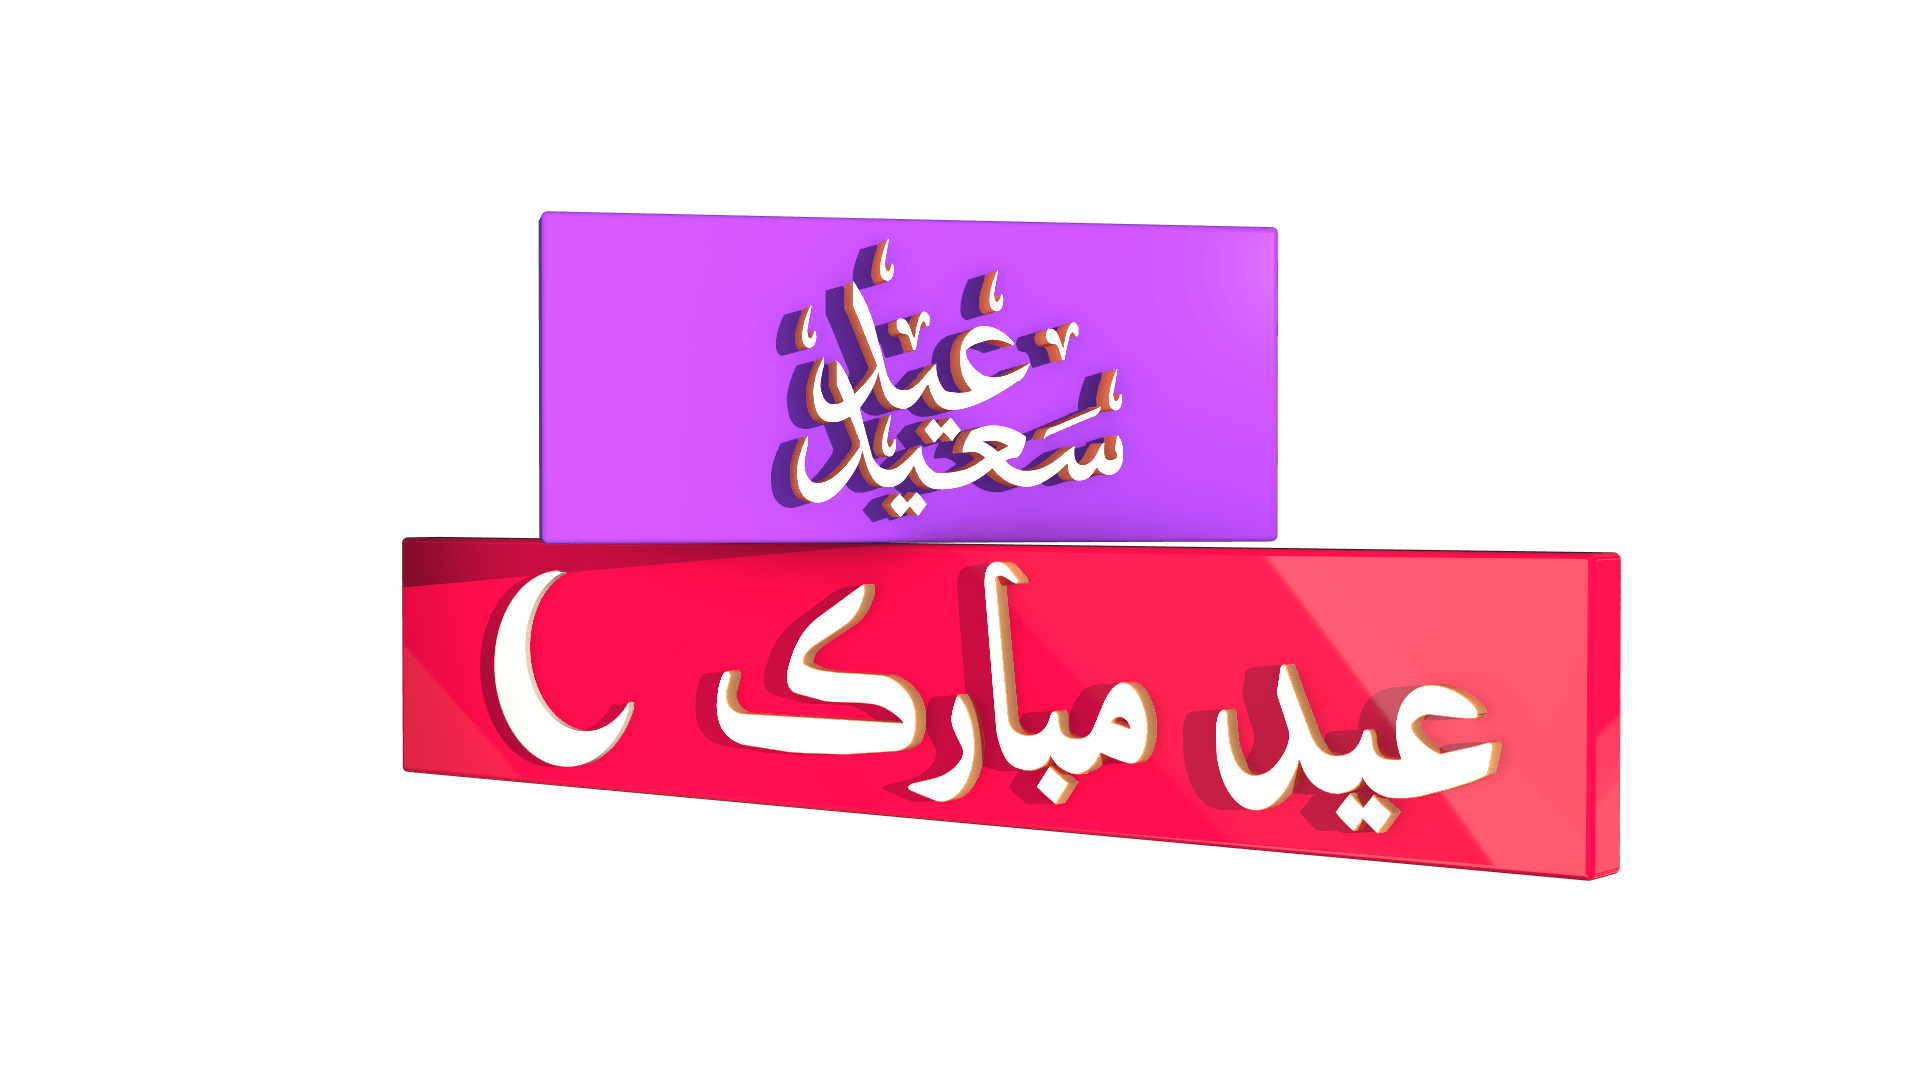 Eid mubarak Urdu free transparent images | MTC TUTORIALS